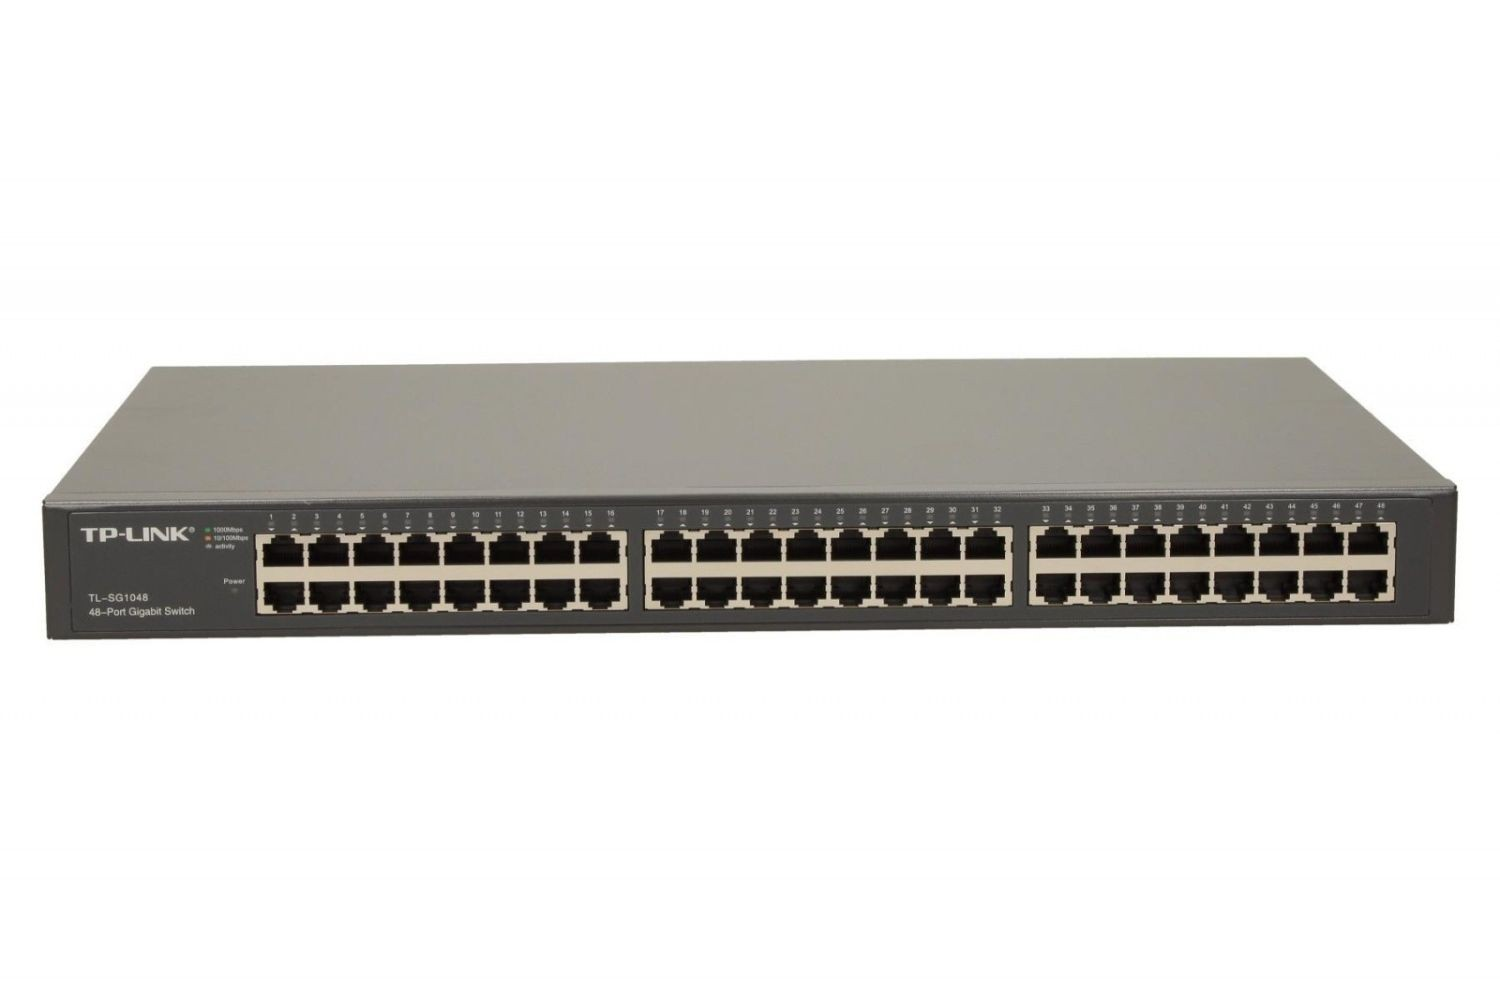 TP-Link TL-SG1048 Switch 48x10/100/1000 rack